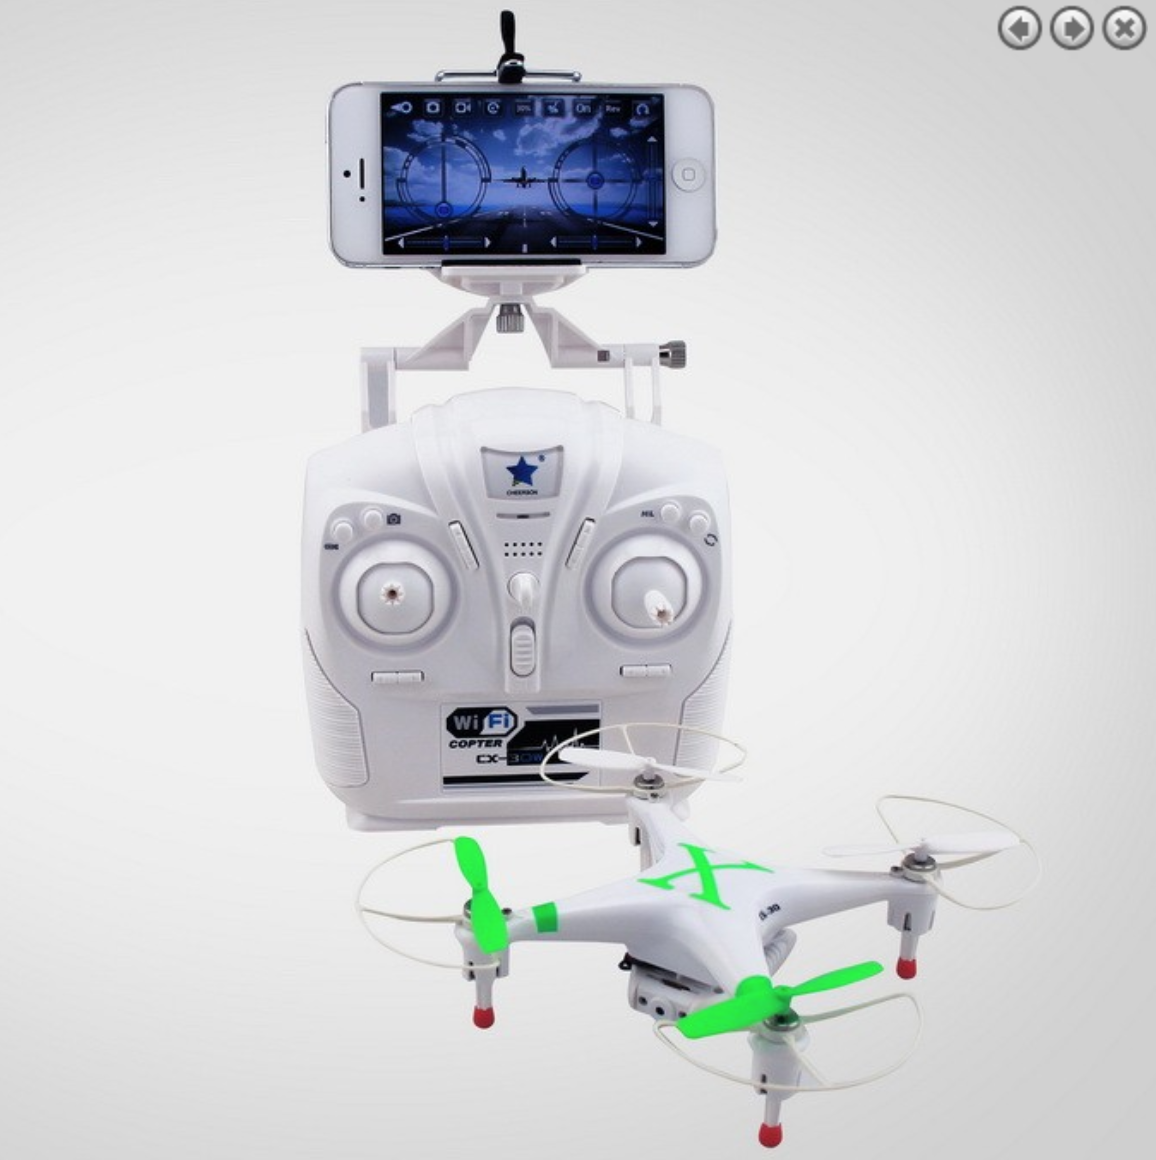 Cheerson CX-30W Wi-Fi FPV Quadcopter Green